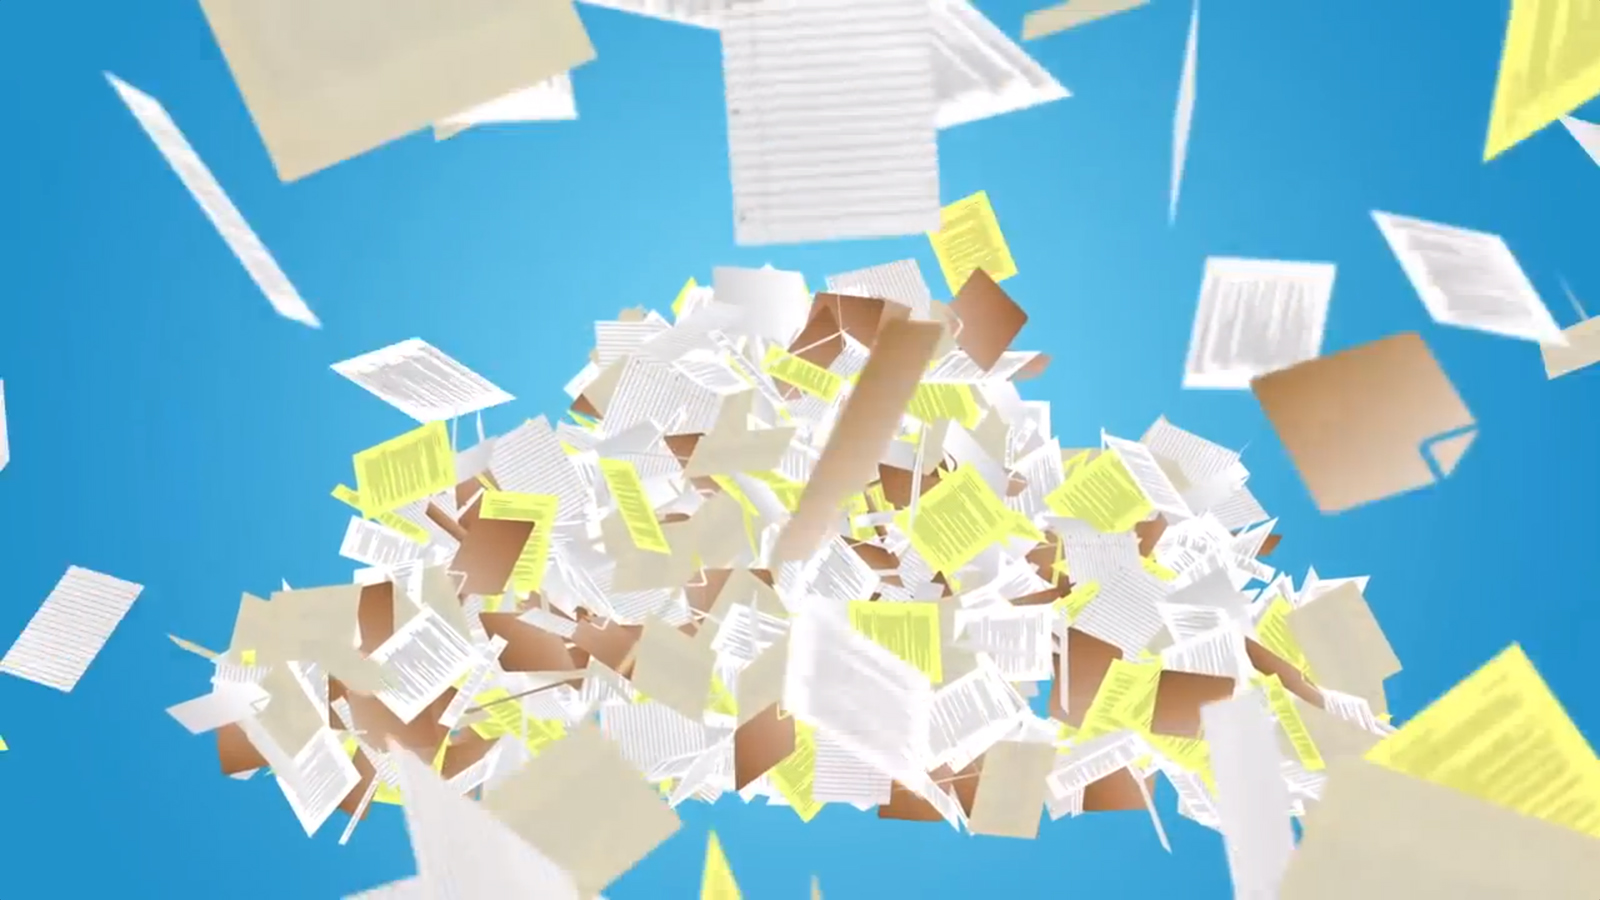 The complete guide to going paperless | TechRadar